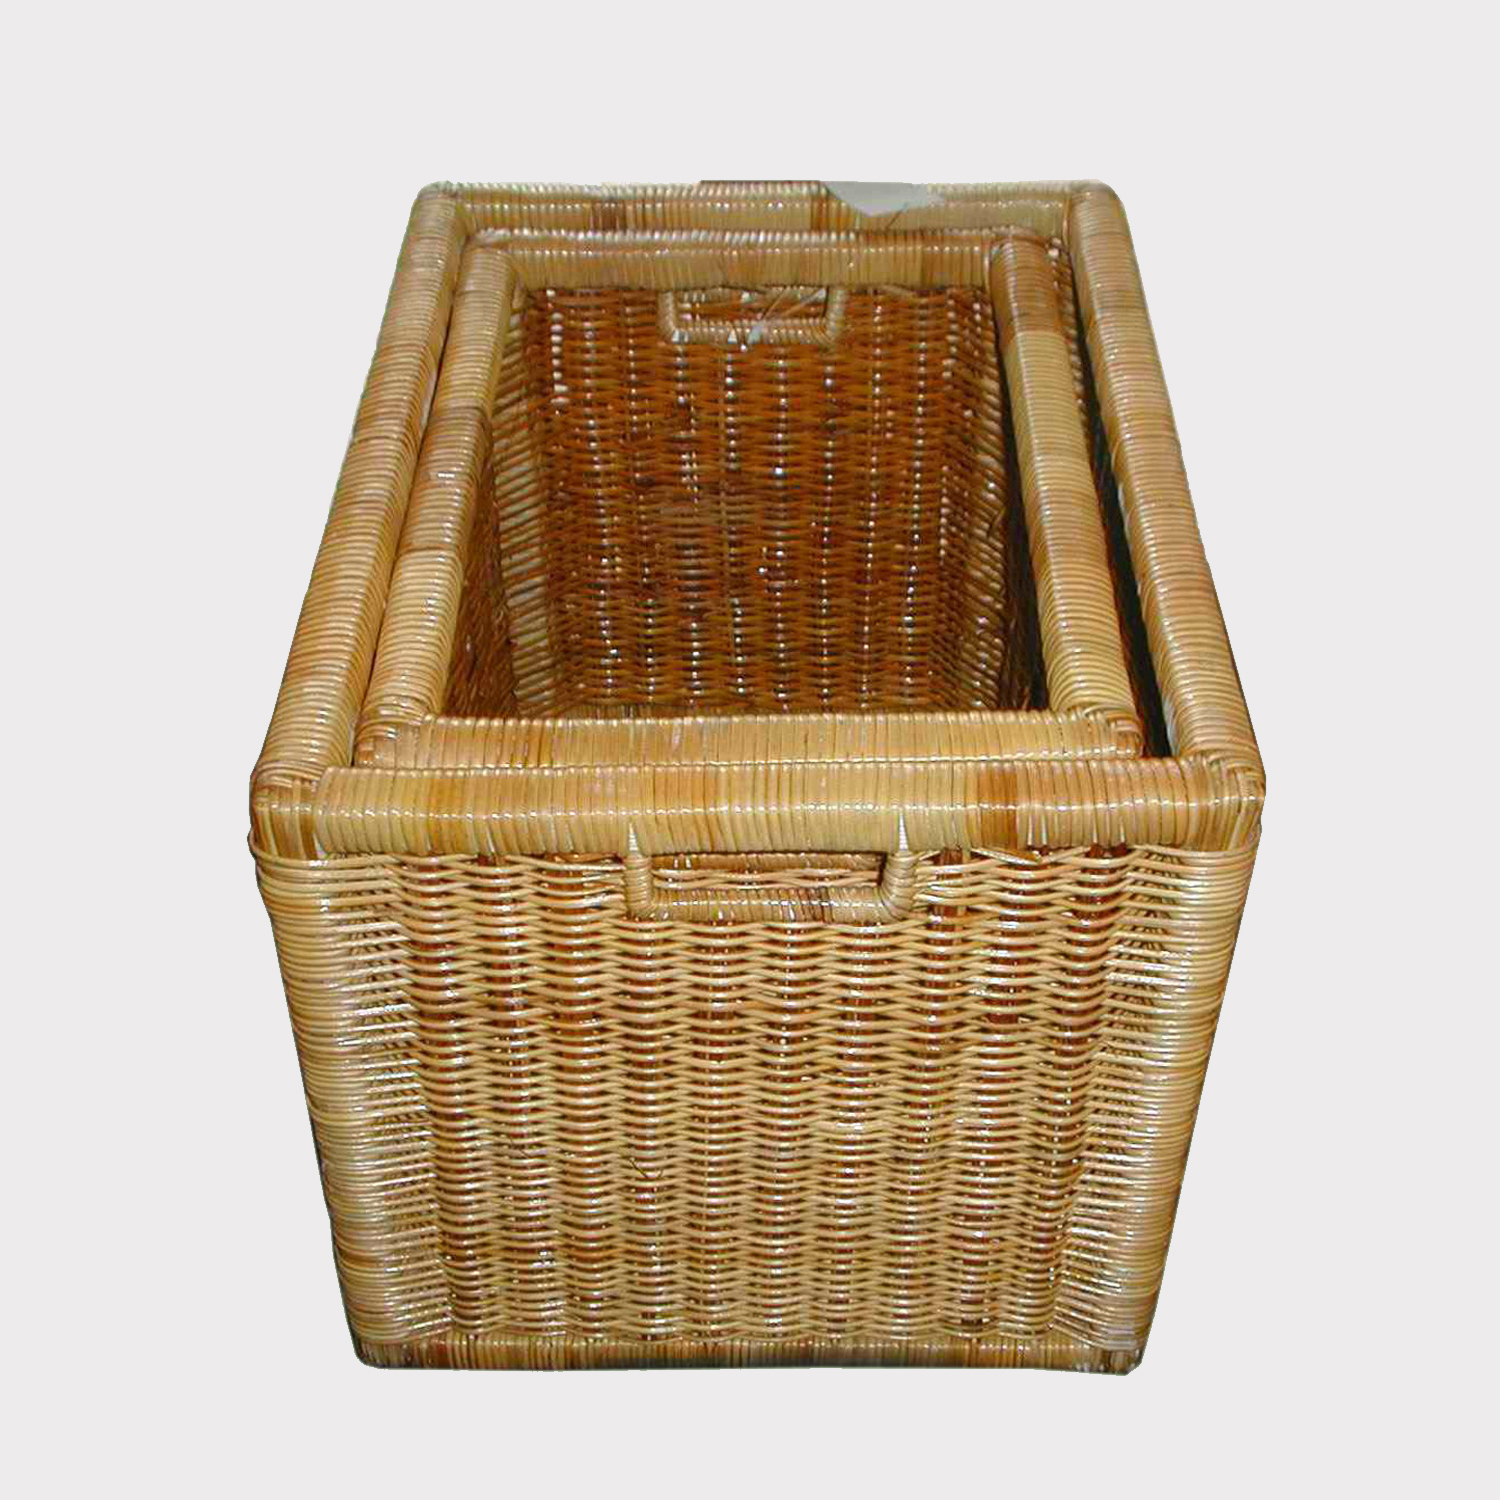 Fern Basket 230010-2